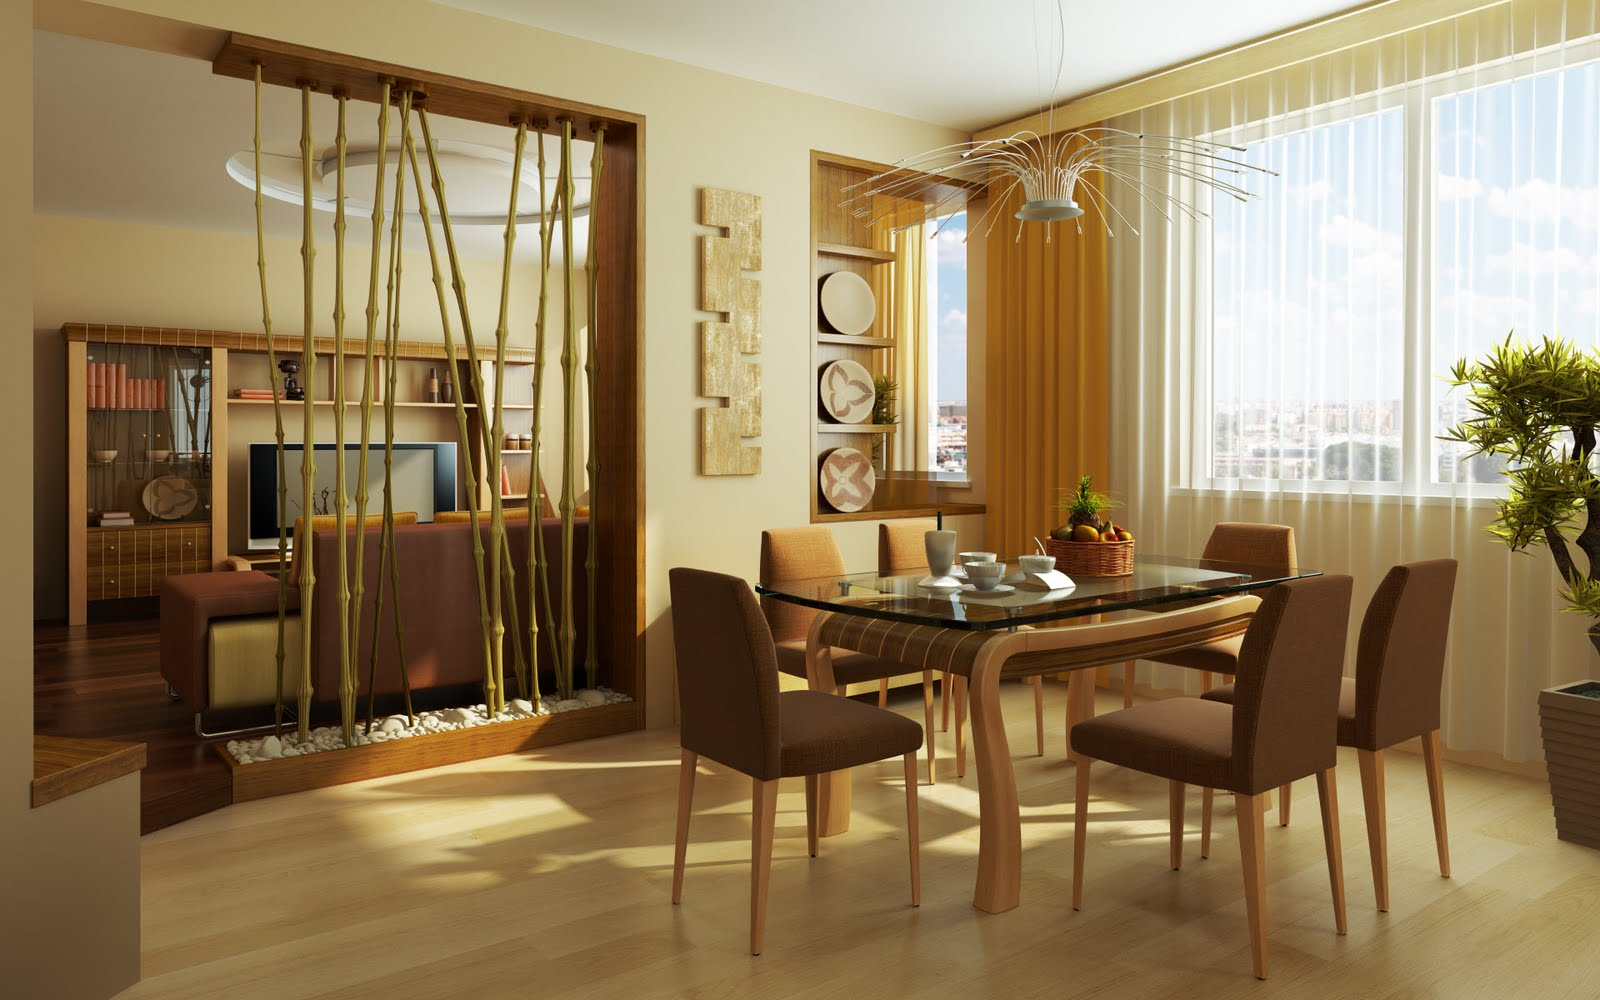 Great Dining Room Interior Design Ideas 1600 x 1000 · 193 kB · jpeg